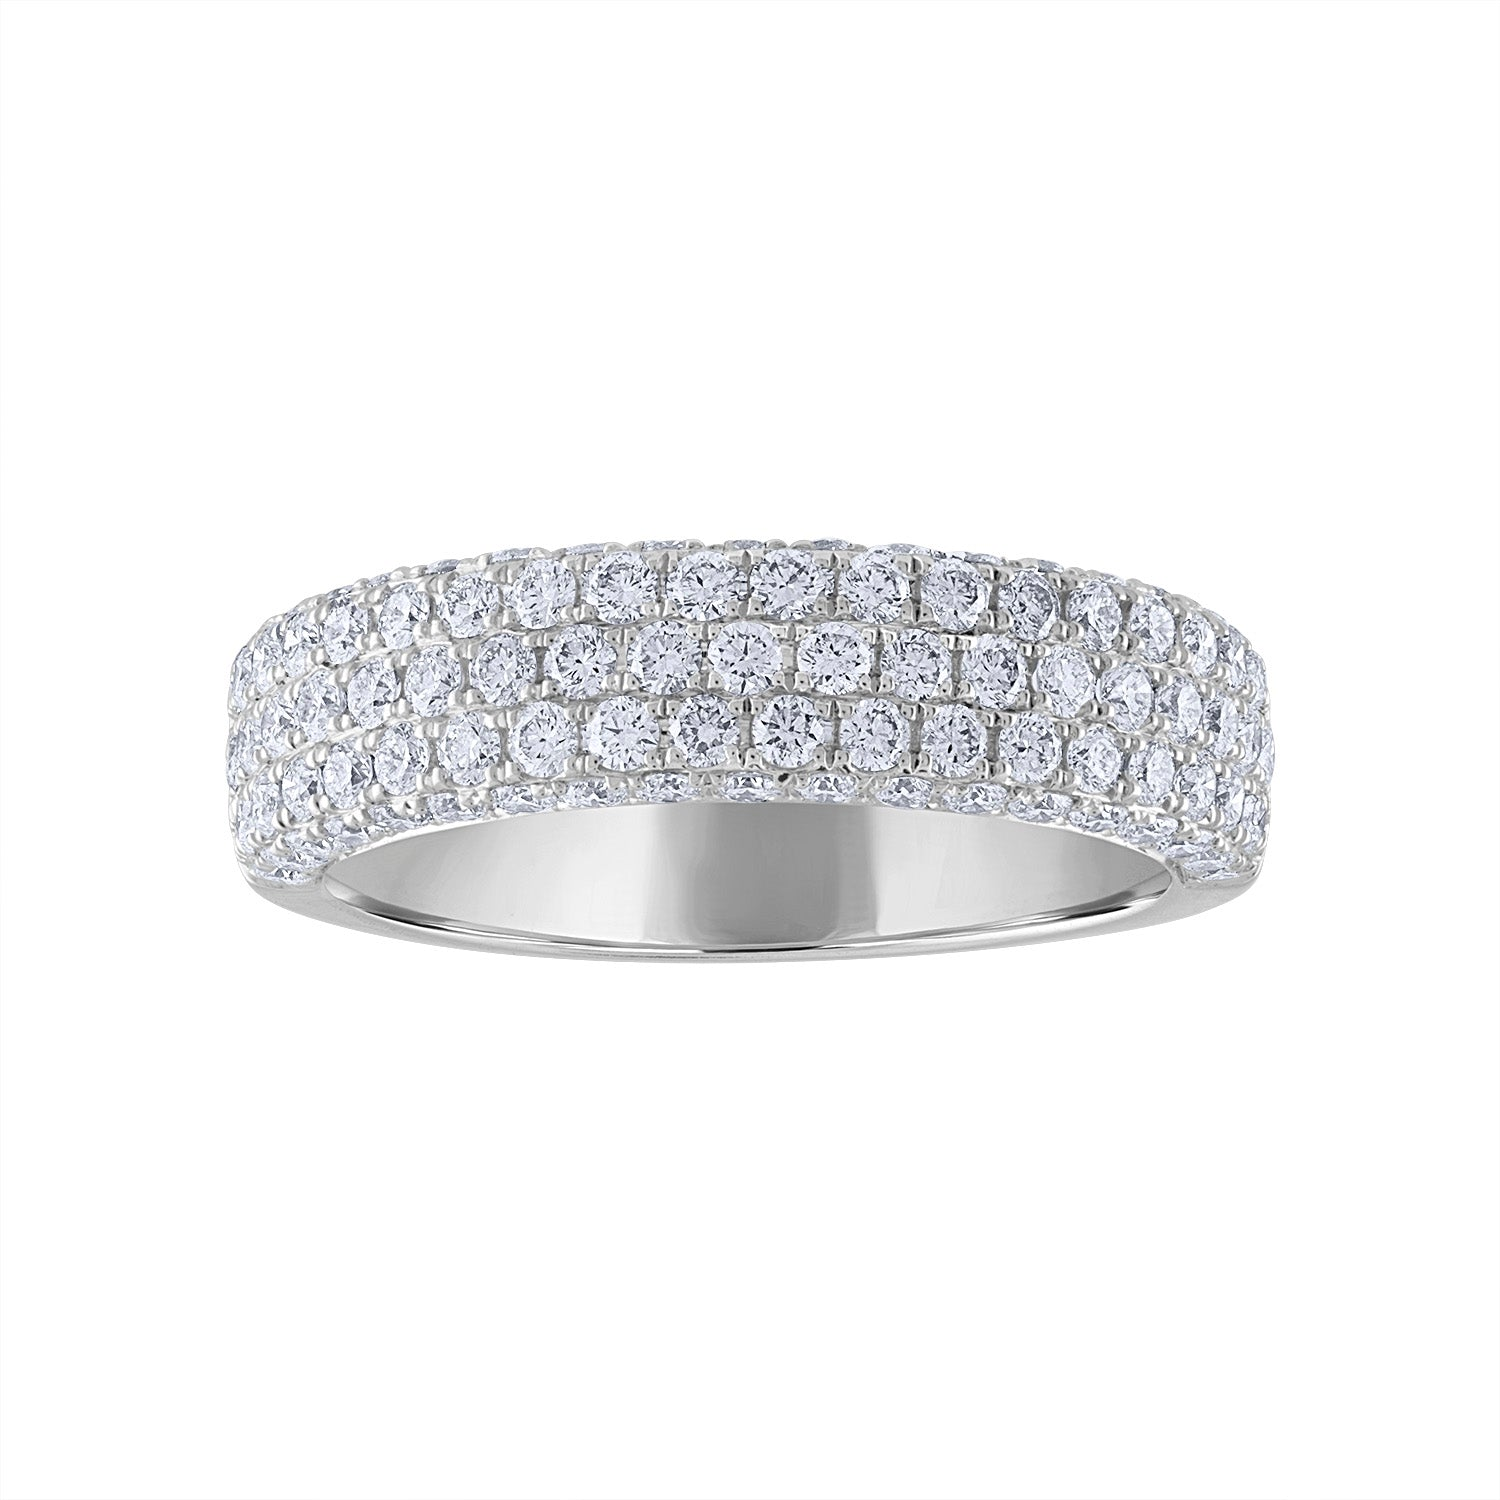 14KT GOLD PAVE DIAMOND WIDE RING